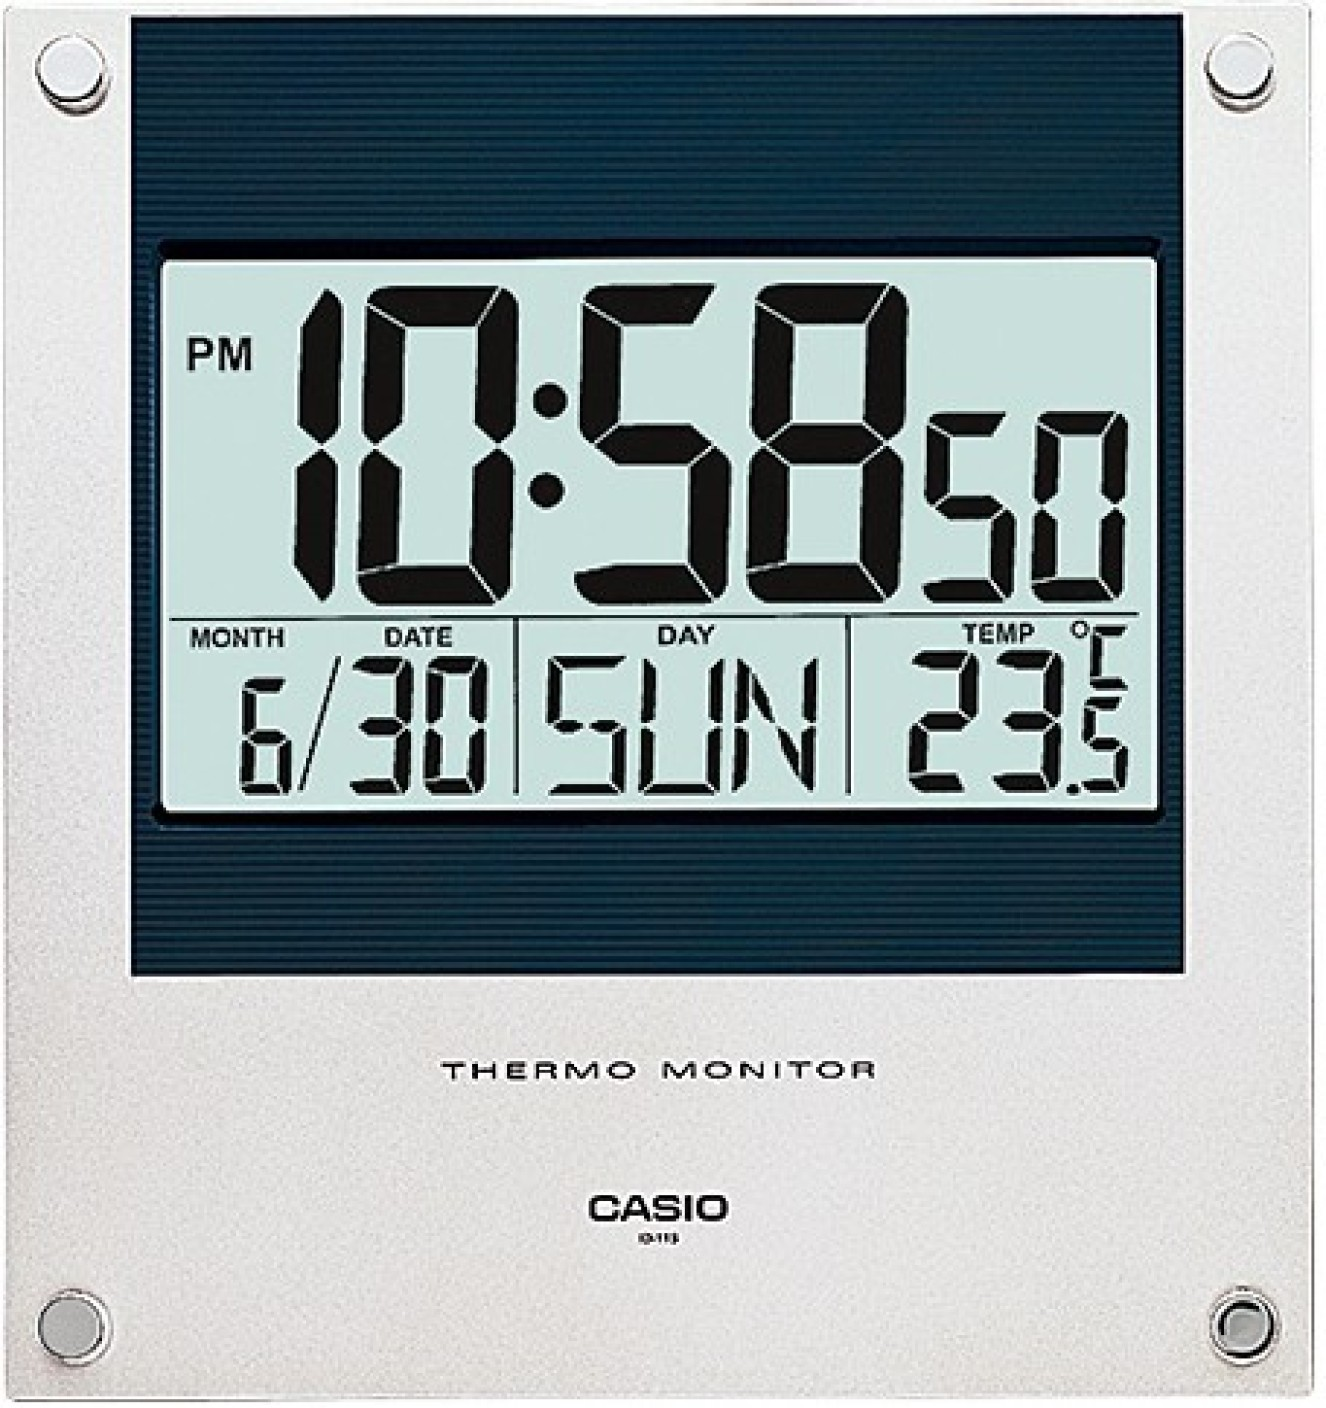 Casio wall clock online image collections home wall decoration ideas casio digital wall clock price in india buy casio digital wall casio digital wall clock wishlist amipublicfo Choice Image